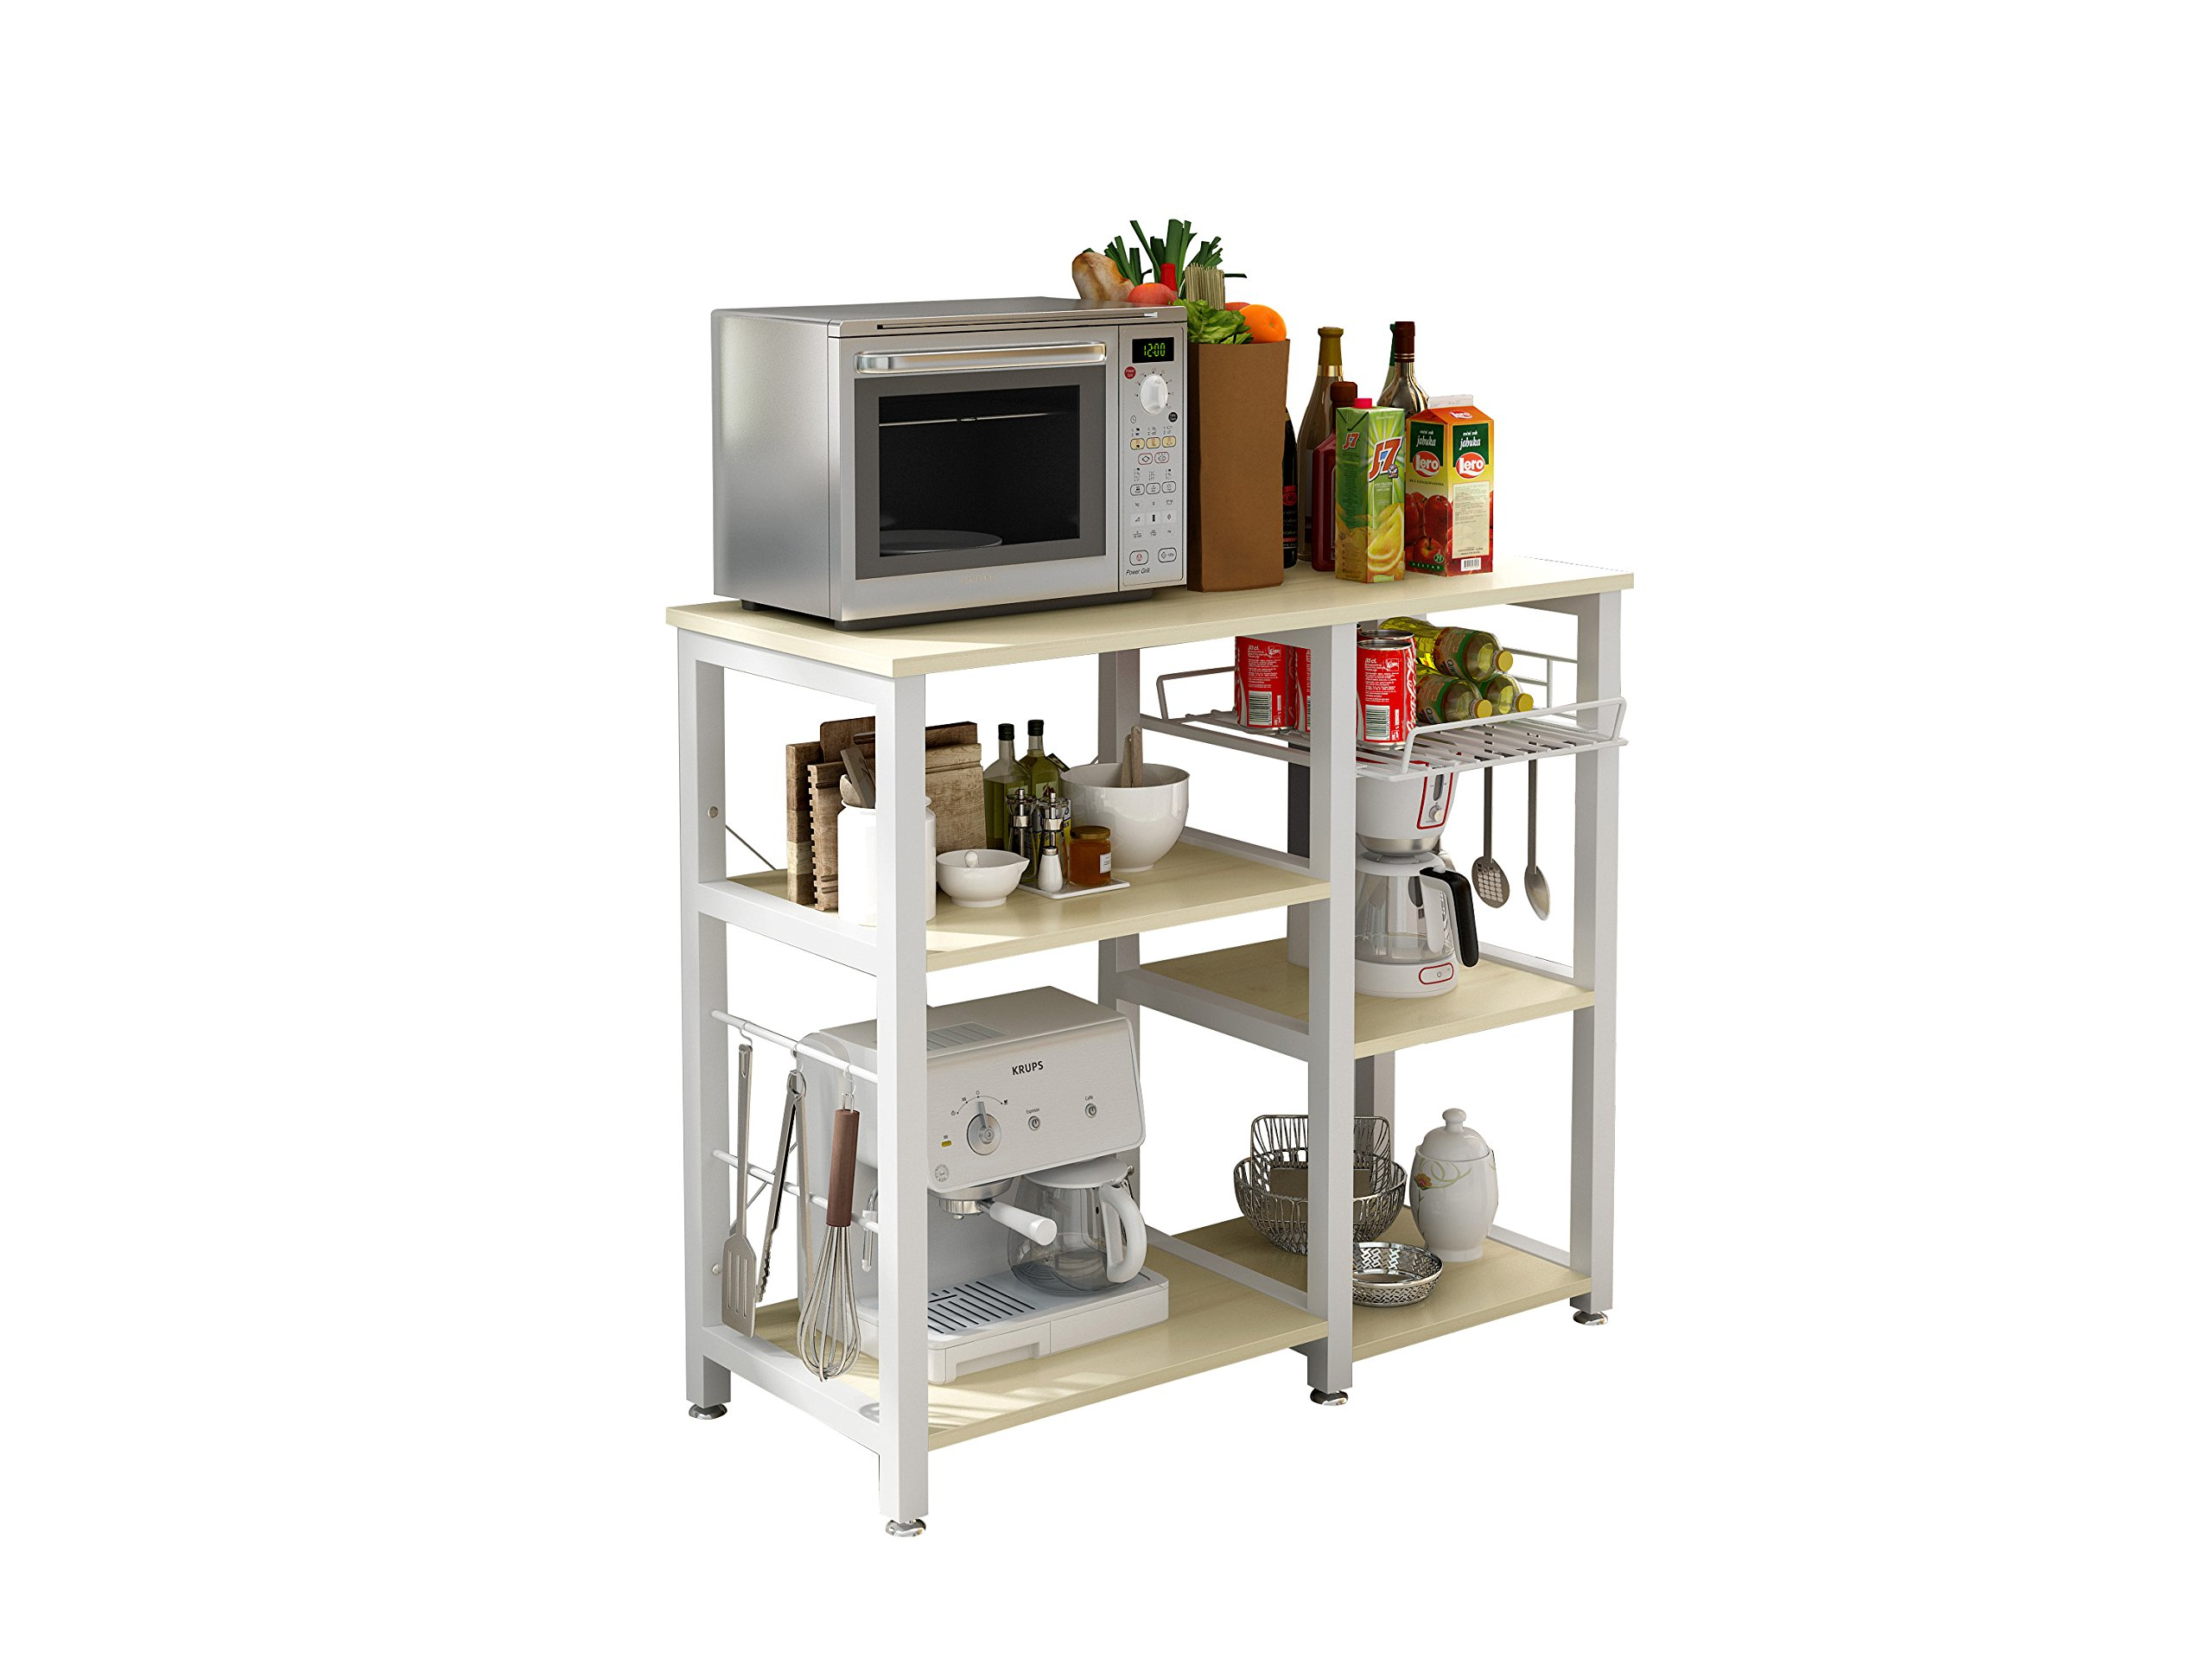 Polar Aurora 3-Tier 35'' Microwave Stand Storage Kitchen Baker's Rack Utility Microwave Oven Stand Storage Cart Workstation Shelf (Beige)